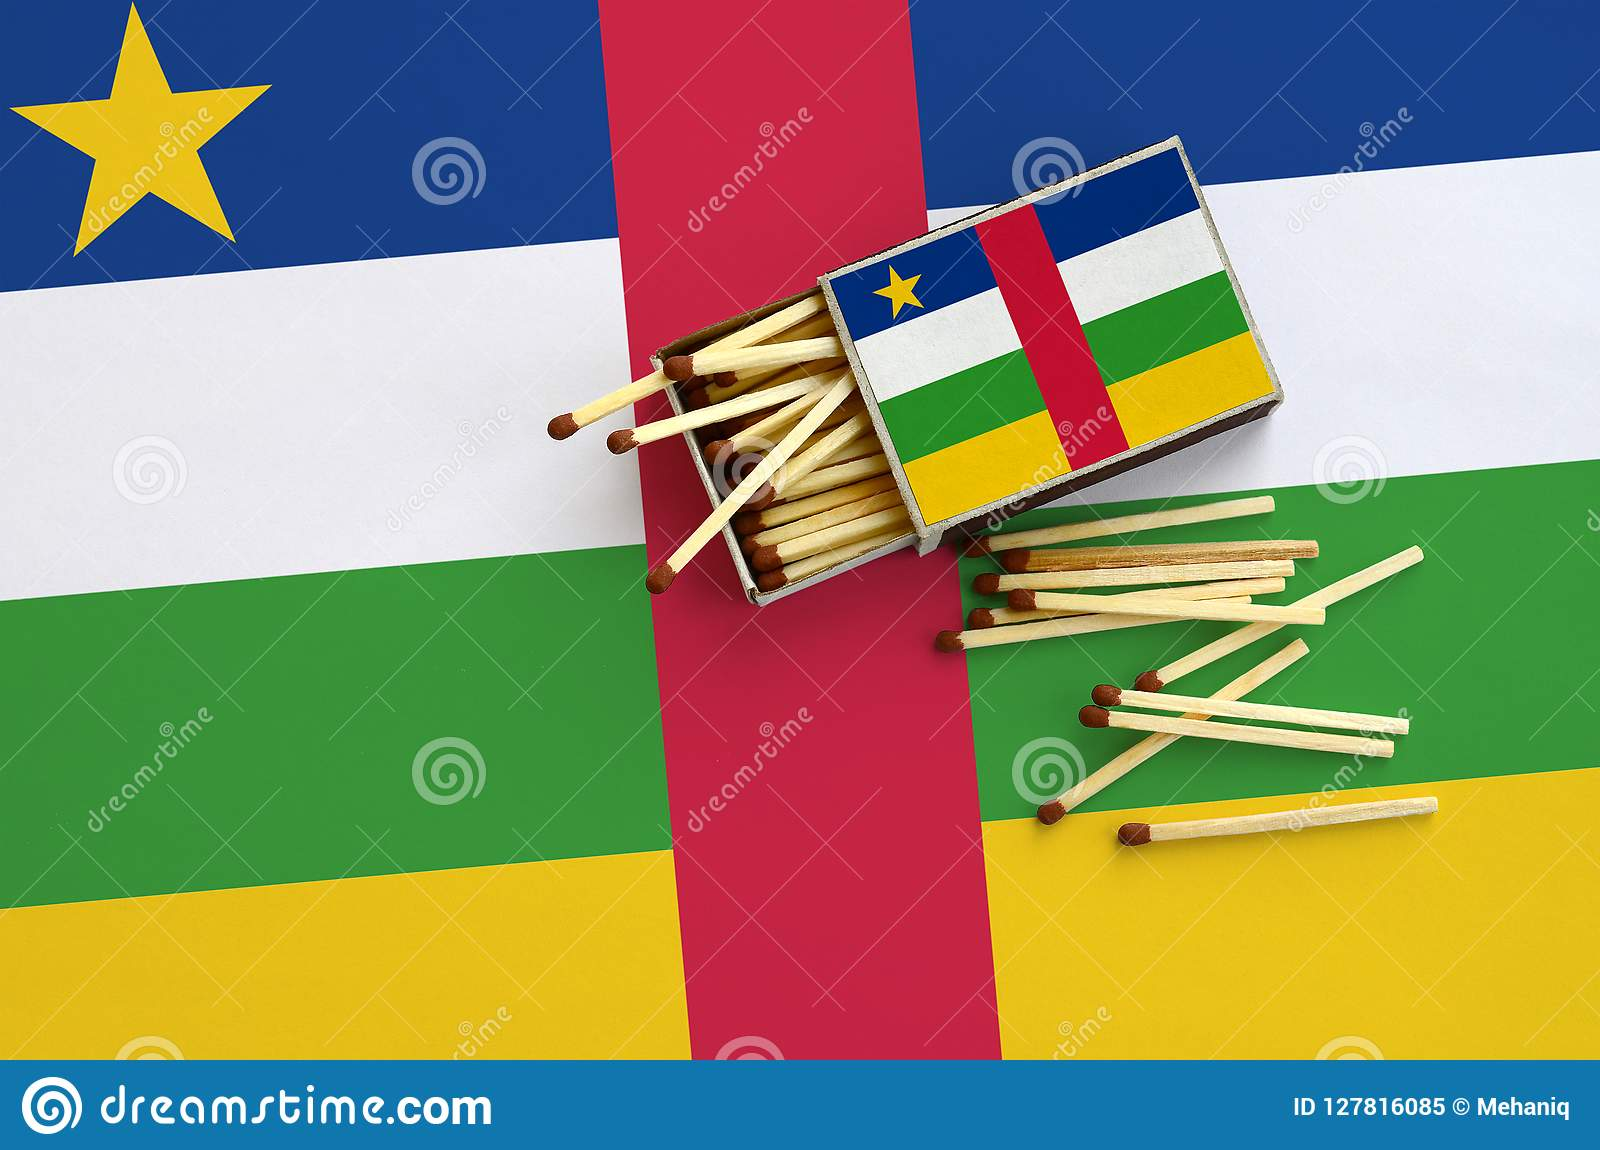 Central African Republic flag is shown on an open matchbox, from which several matches fall and lies on a large flag